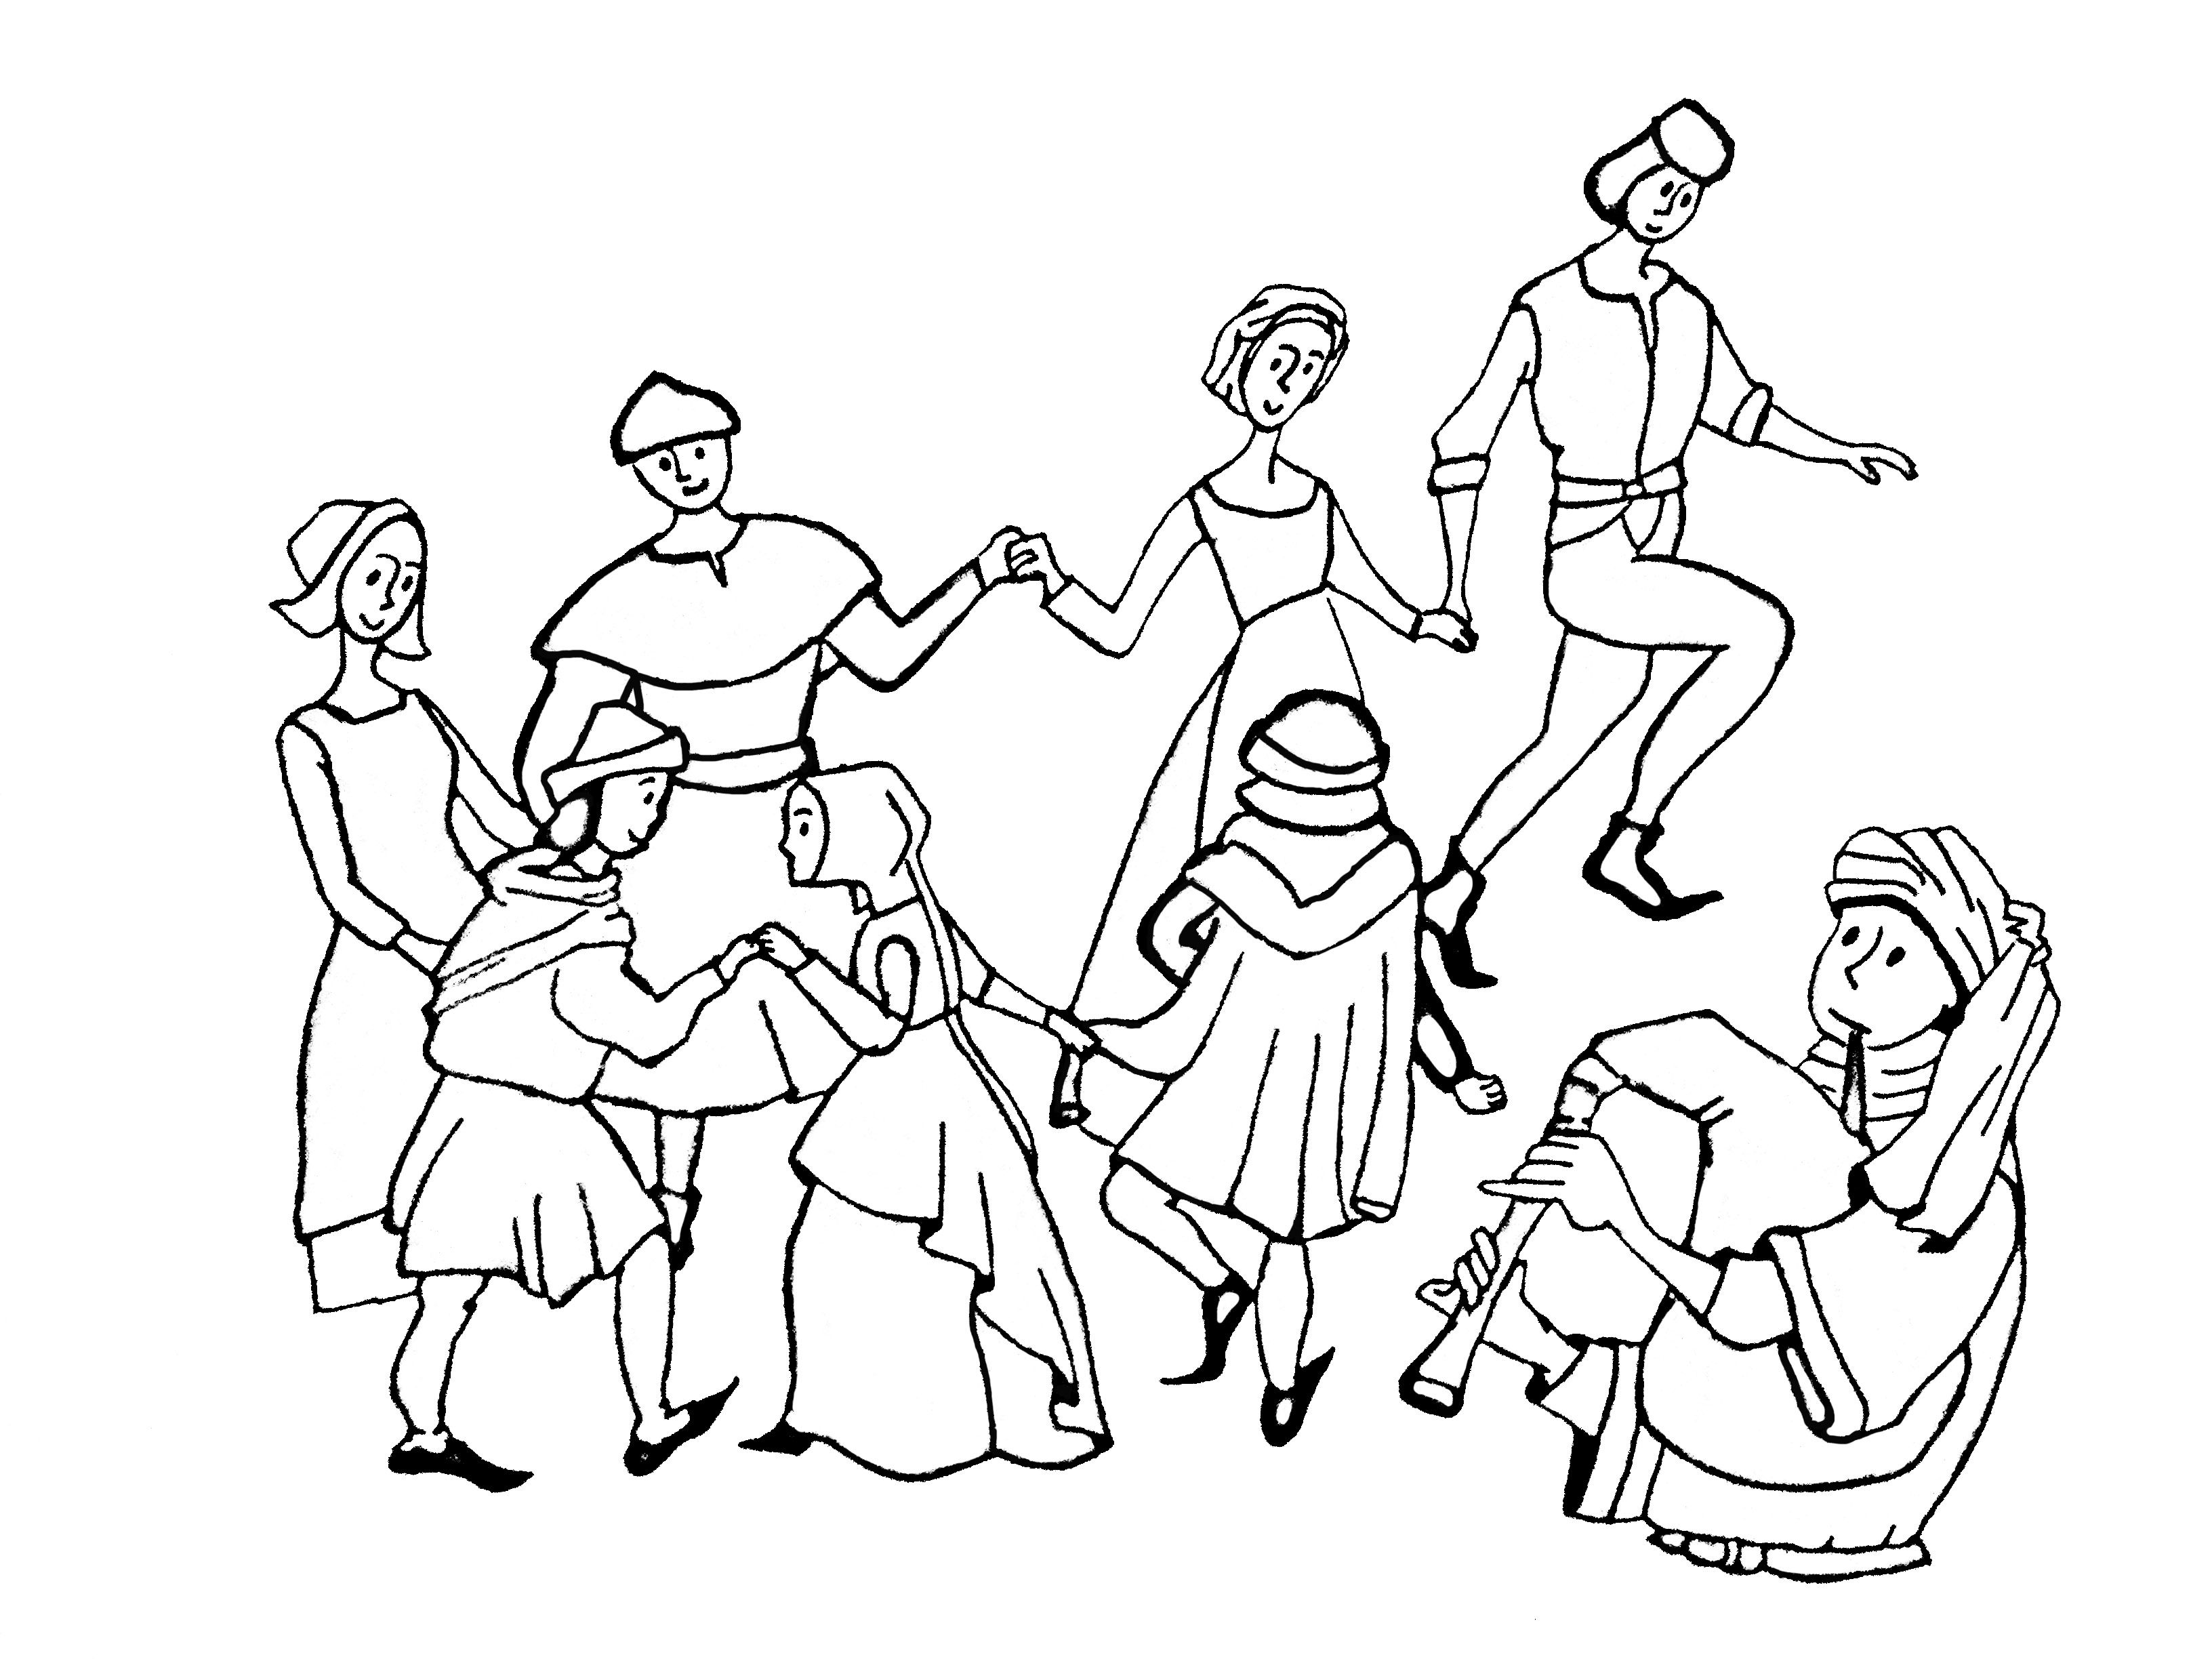 3264x2448 Free Coloring Page Coloringdult Middlege Danse Drawing